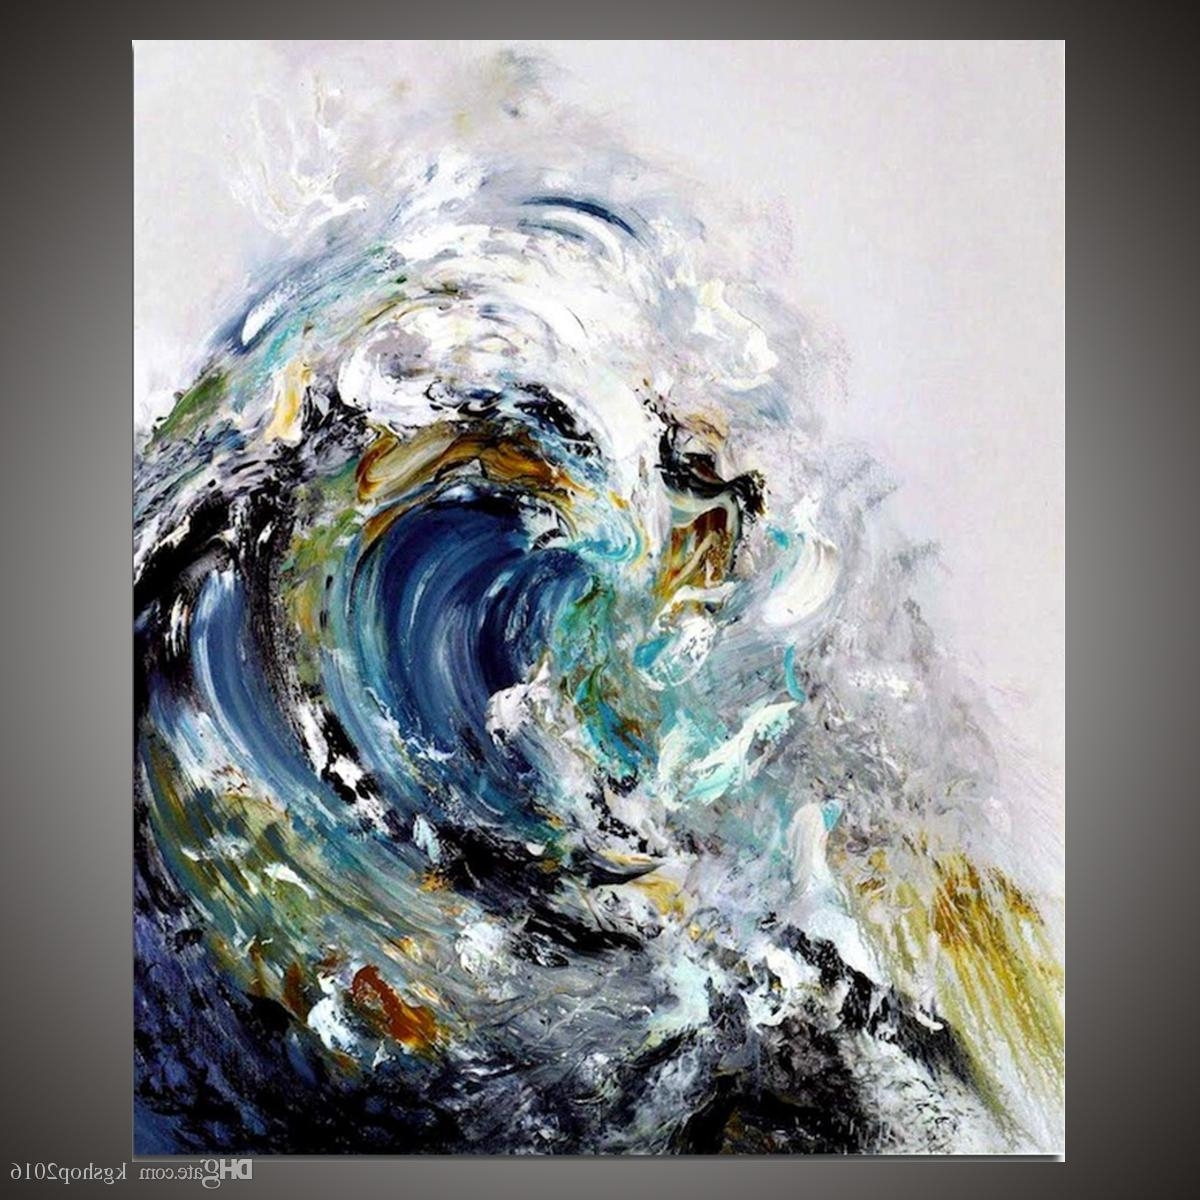 Abstract Ocean Wall Art Throughout Latest 2018 Kgtech Rolling Ocean Waves Art Blue Sea Waters Painting (View 7 of 15)